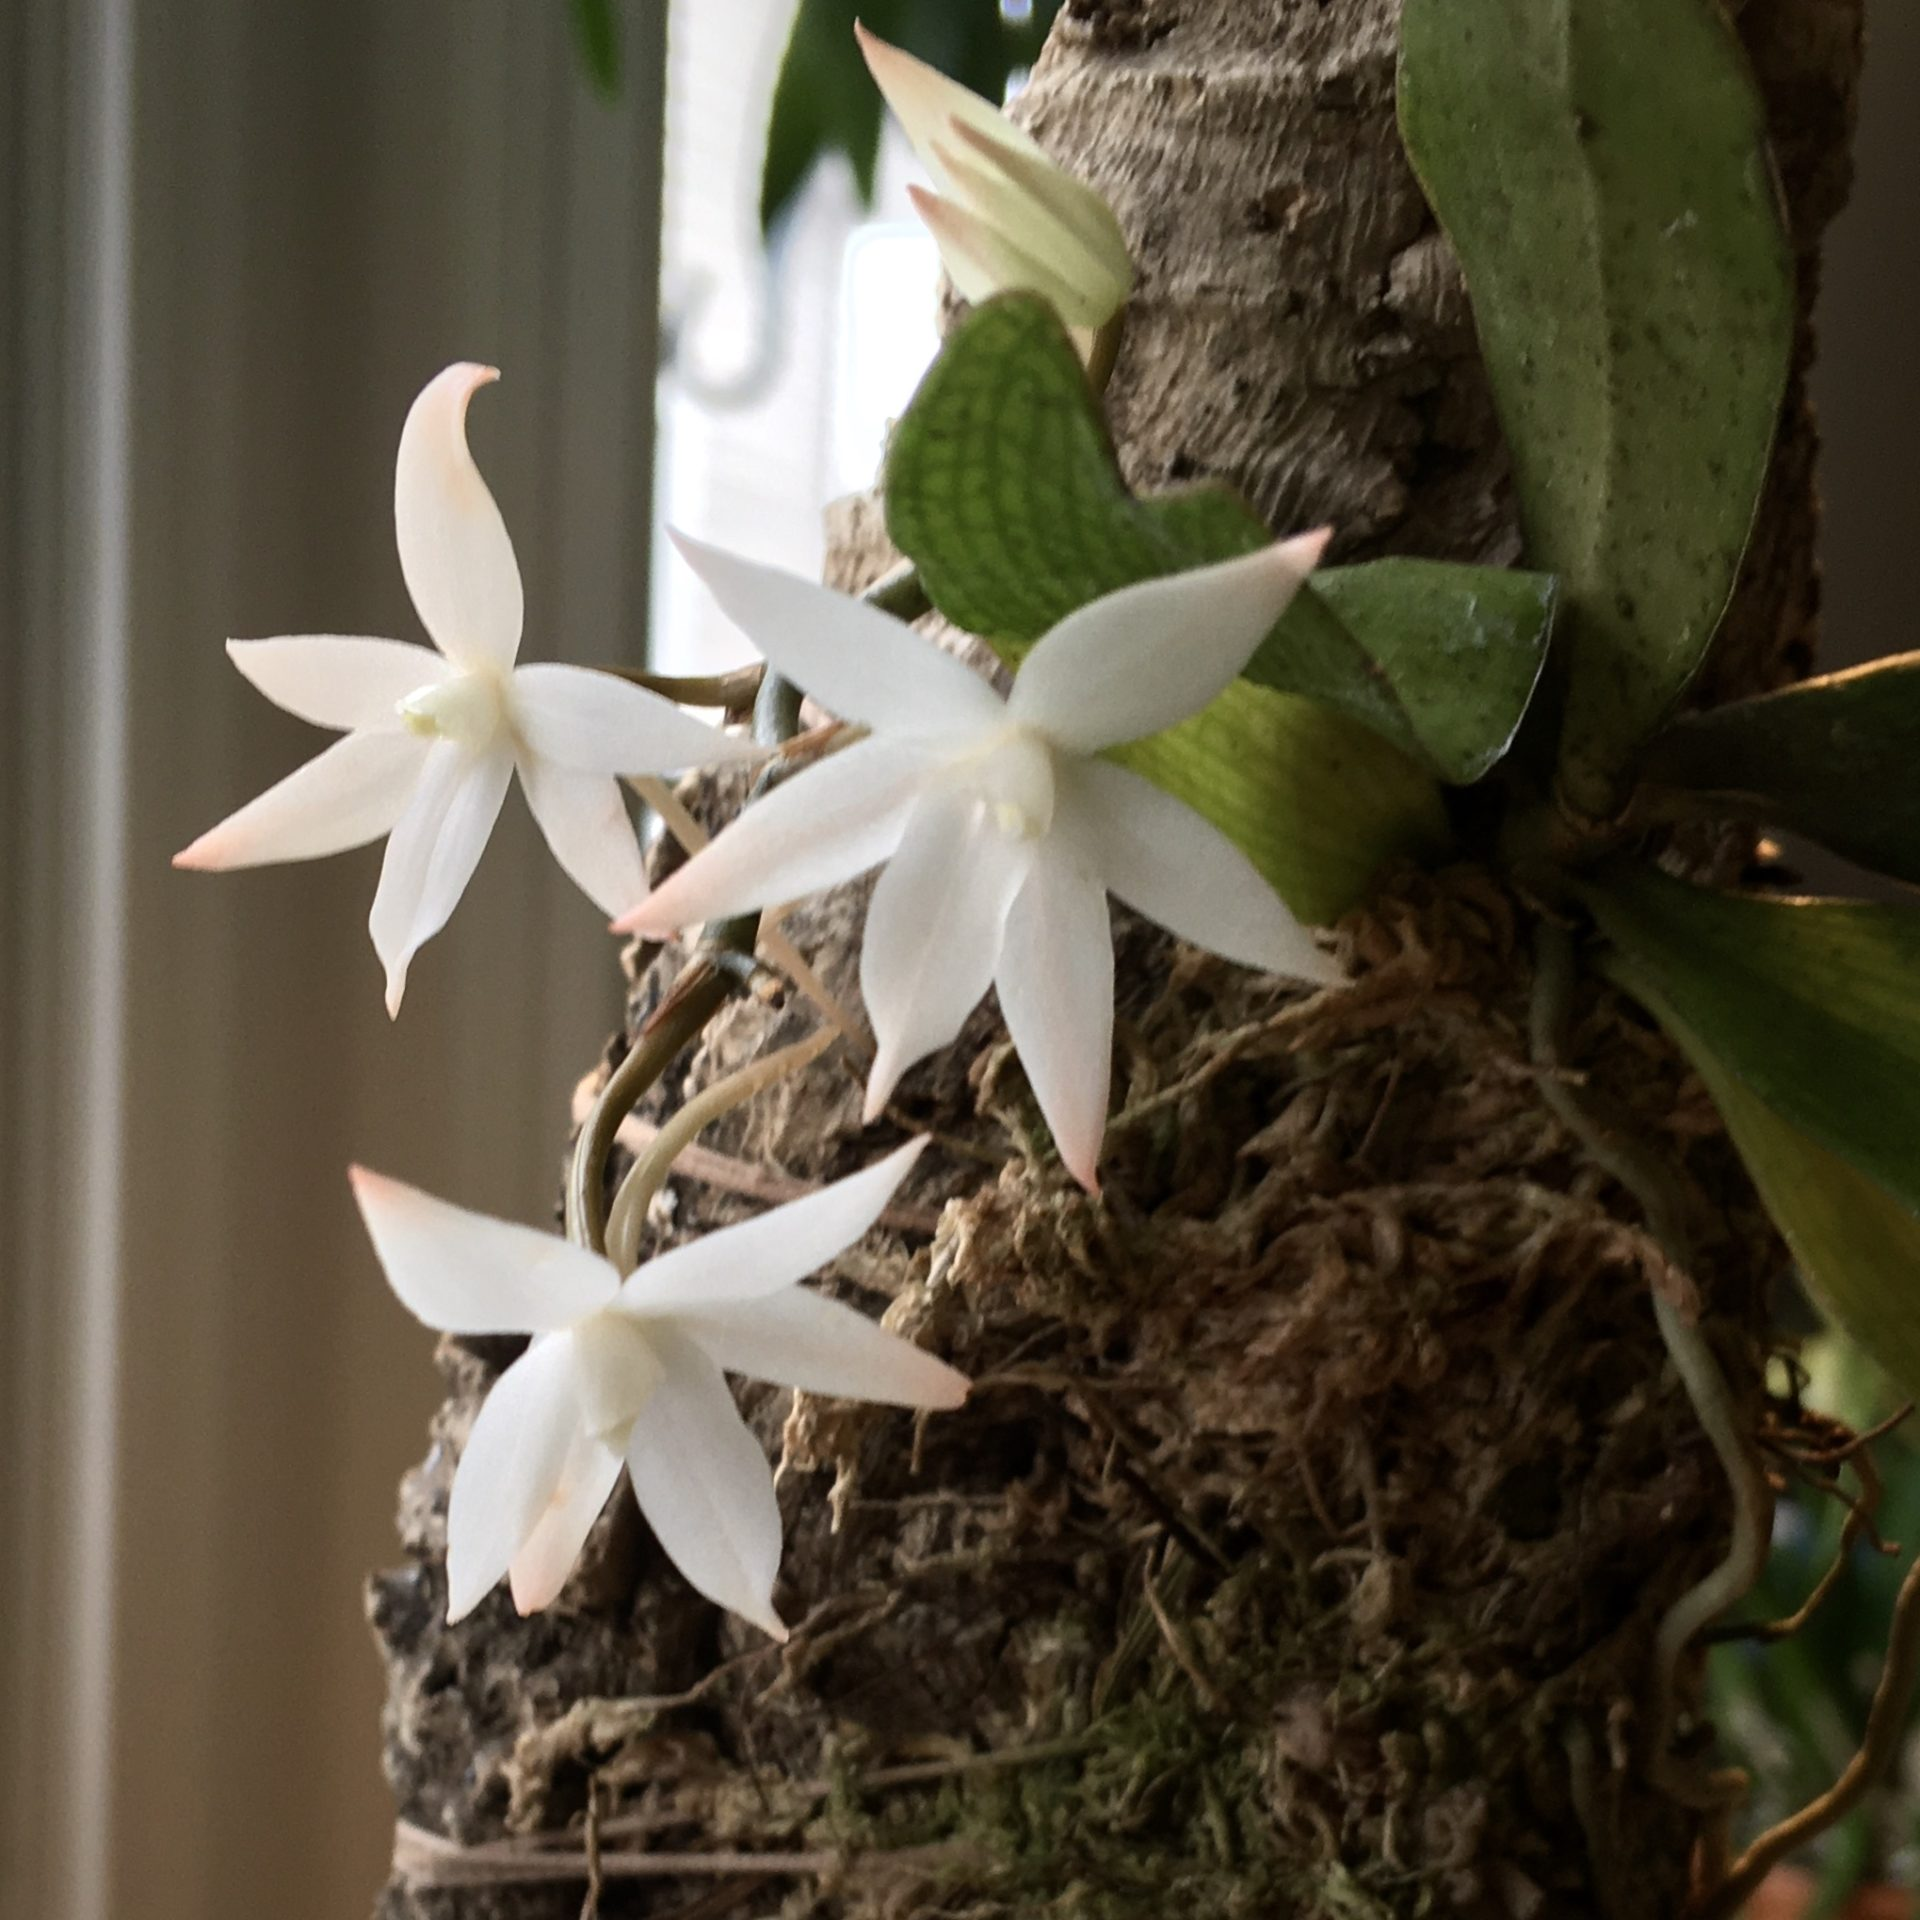 Aerangis blooming